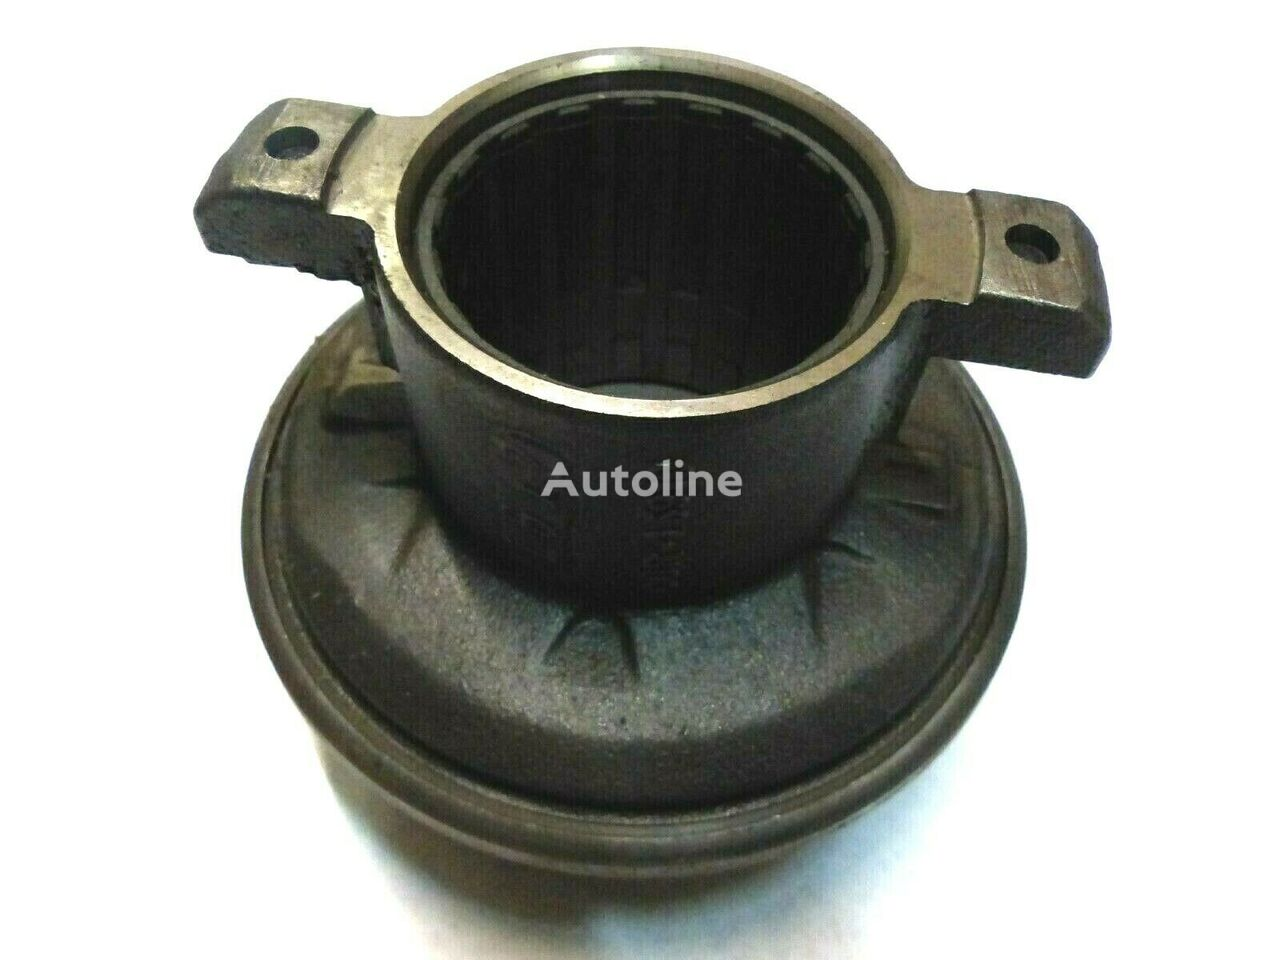 VALEO throwout bearing for truck